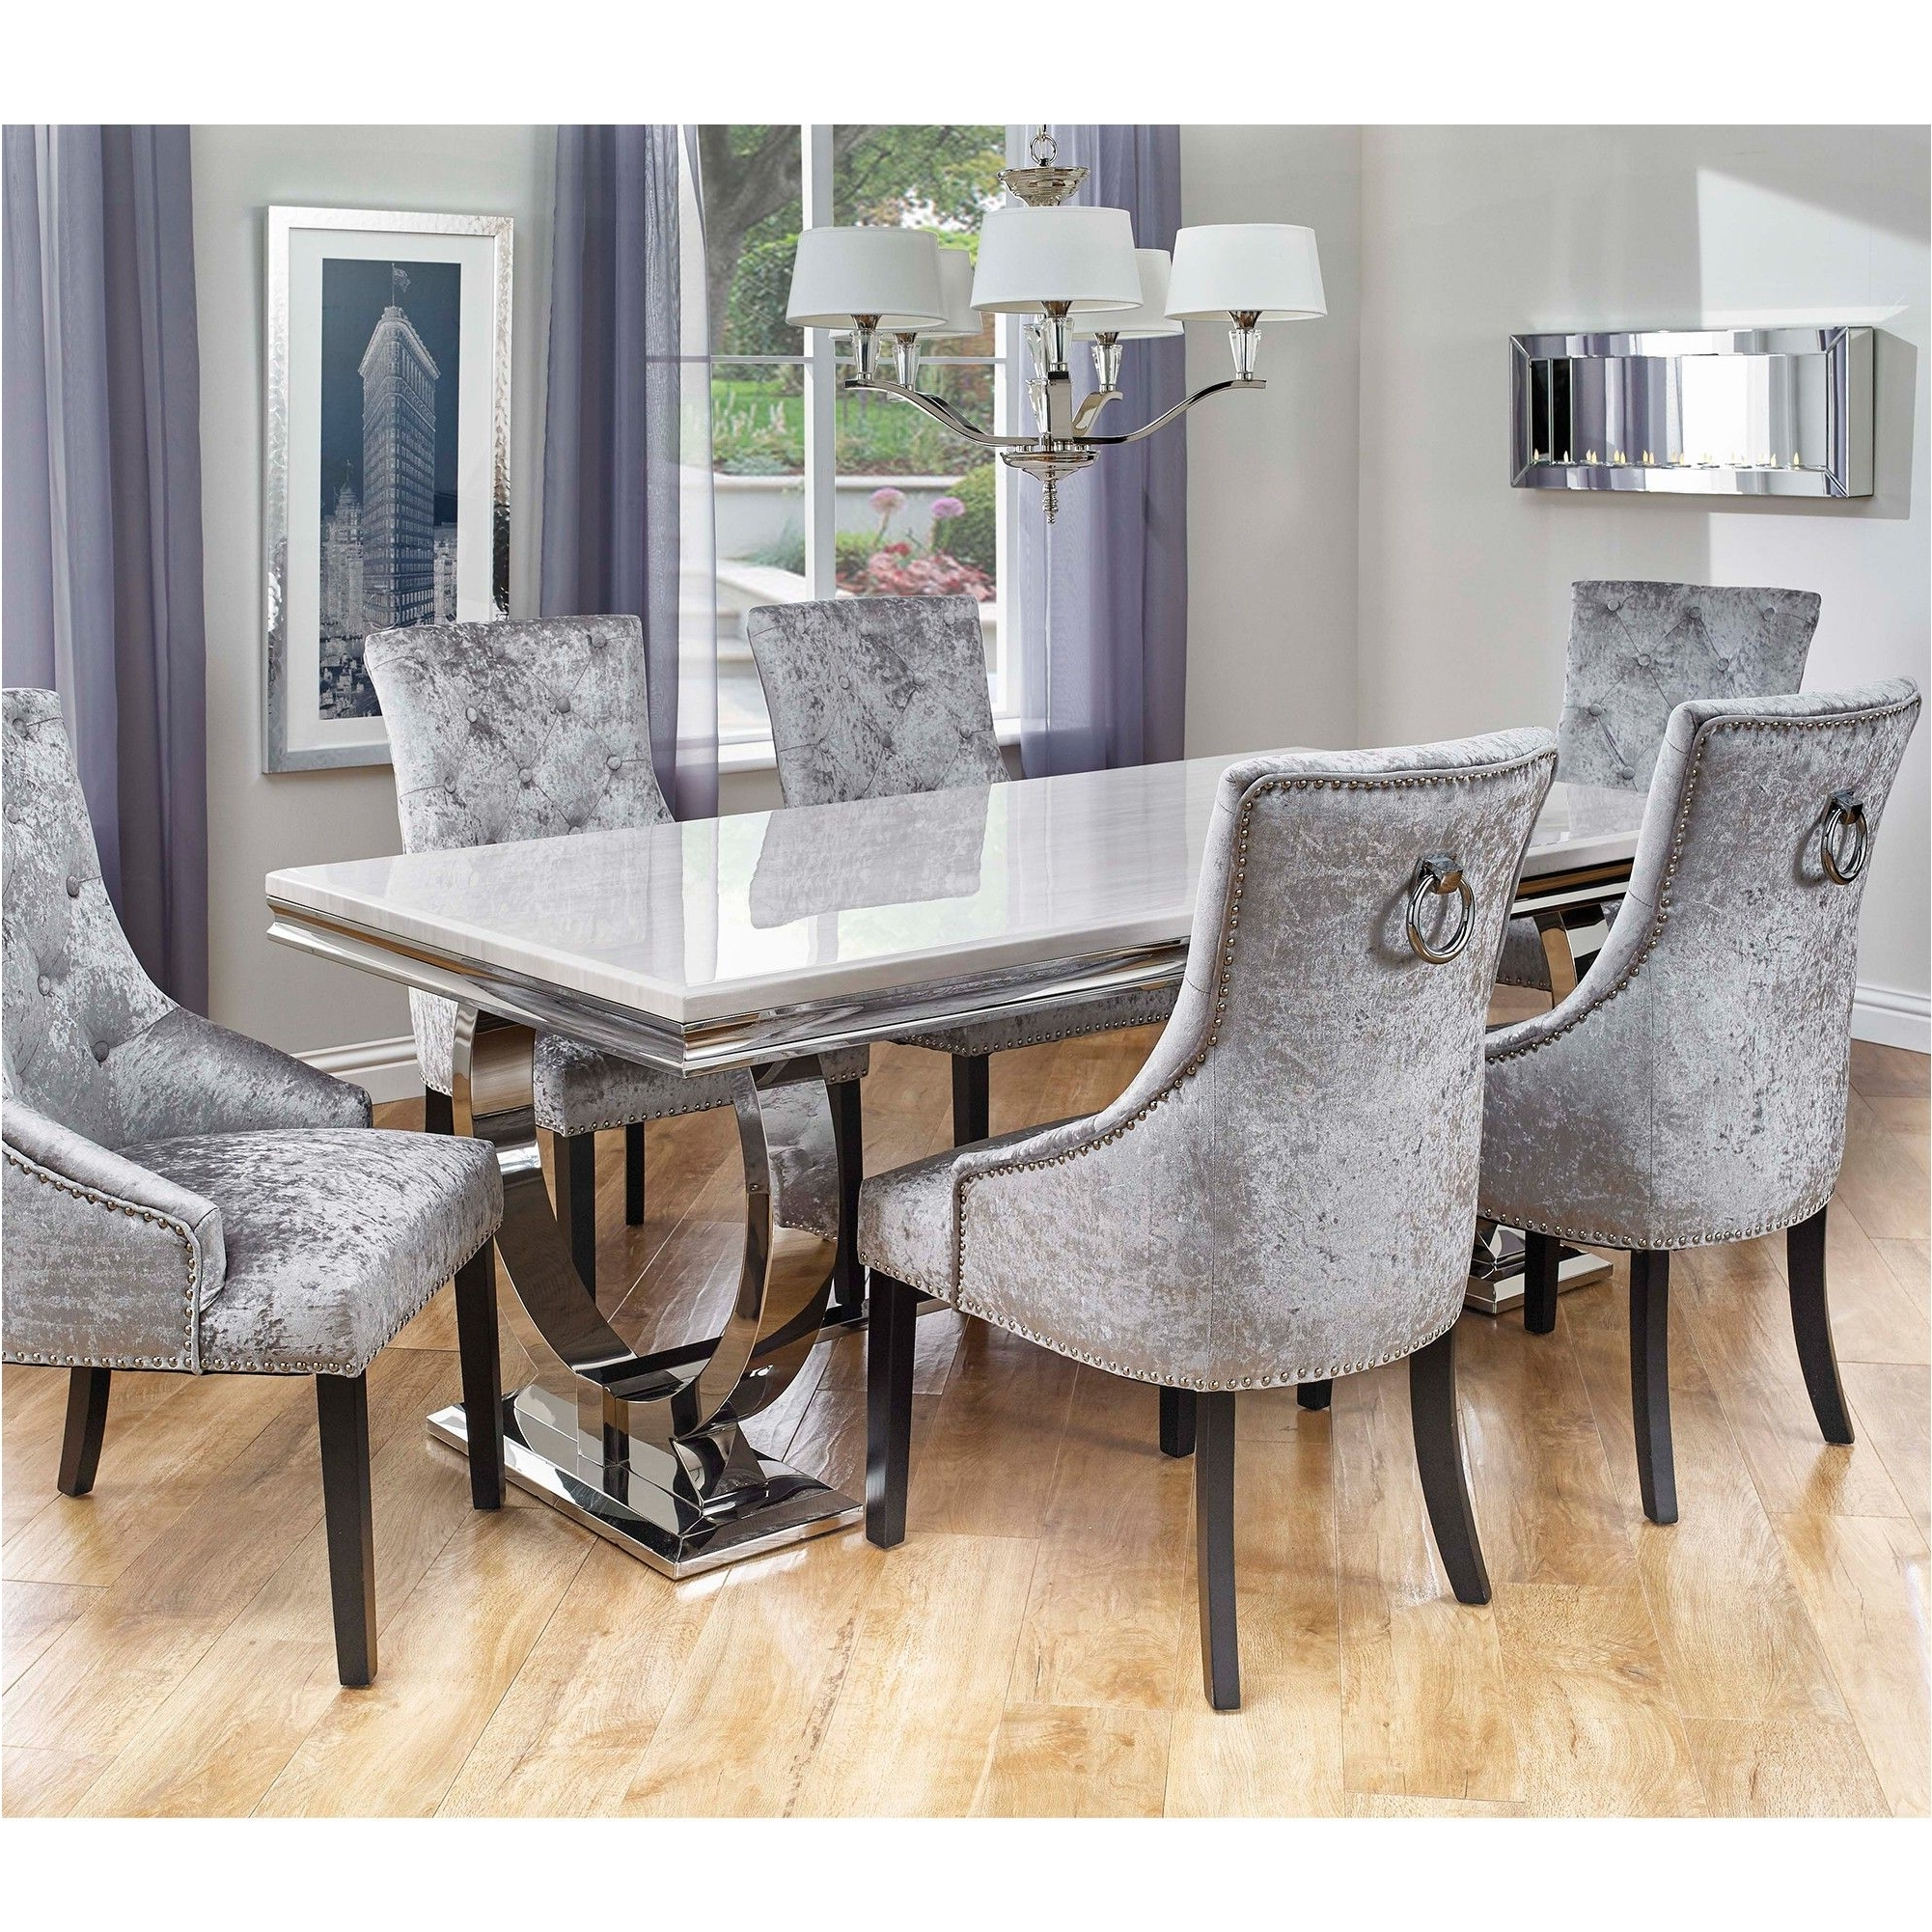 6 Chairs And Dining Tables Throughout Current Spectacular Collection Valentina Dining Table And 6 Chairs Dining (Gallery 9 of 25)